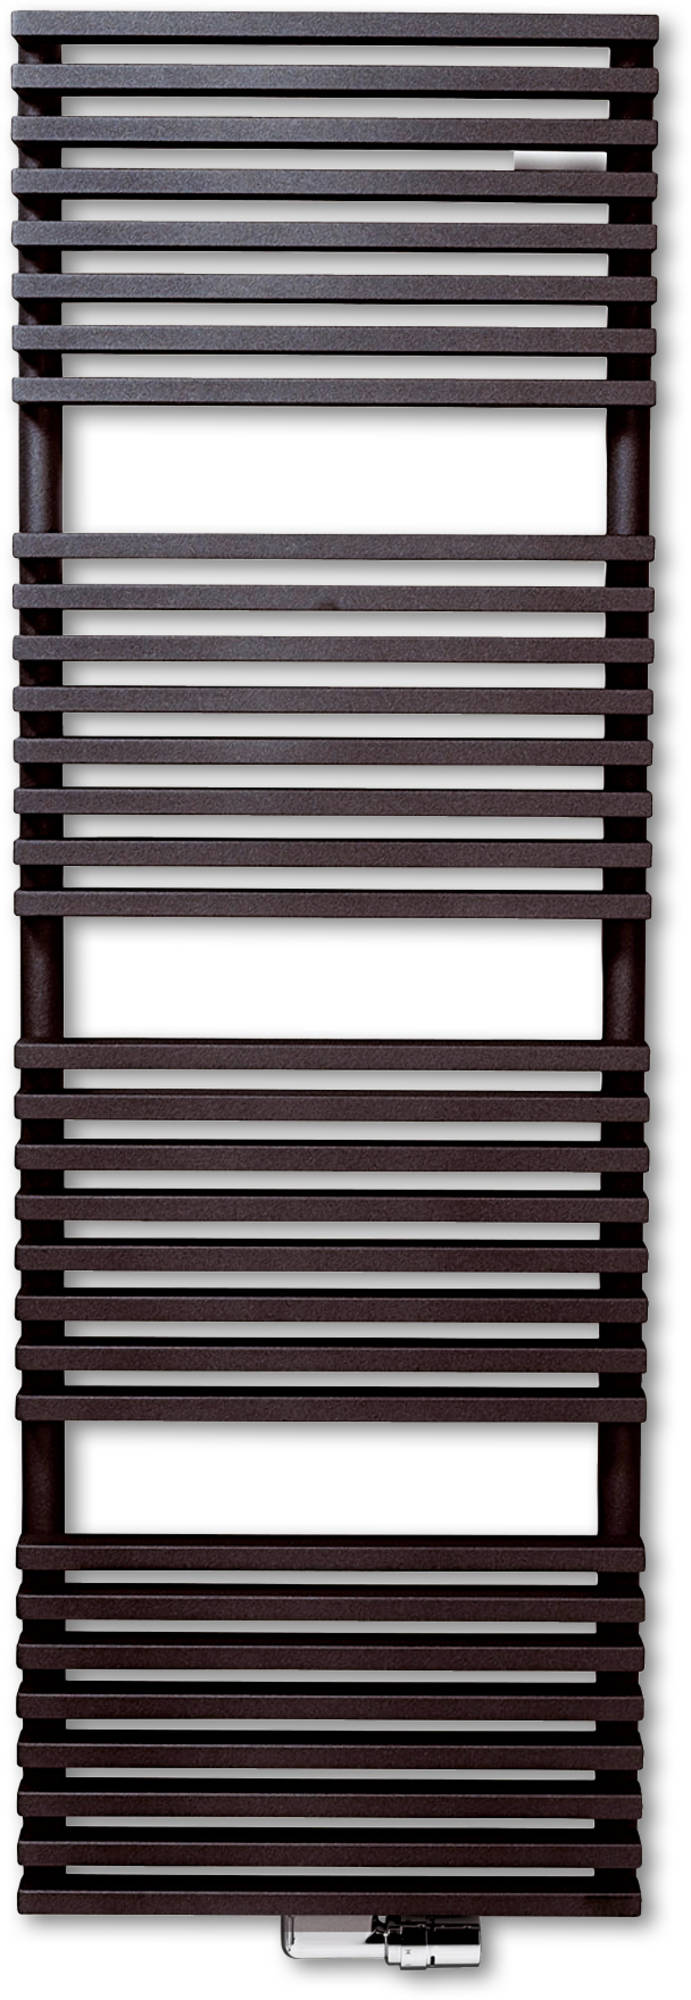 Vasco Zana zbd design radiator 600x984 n21 788w as=0018, wit ral 9016